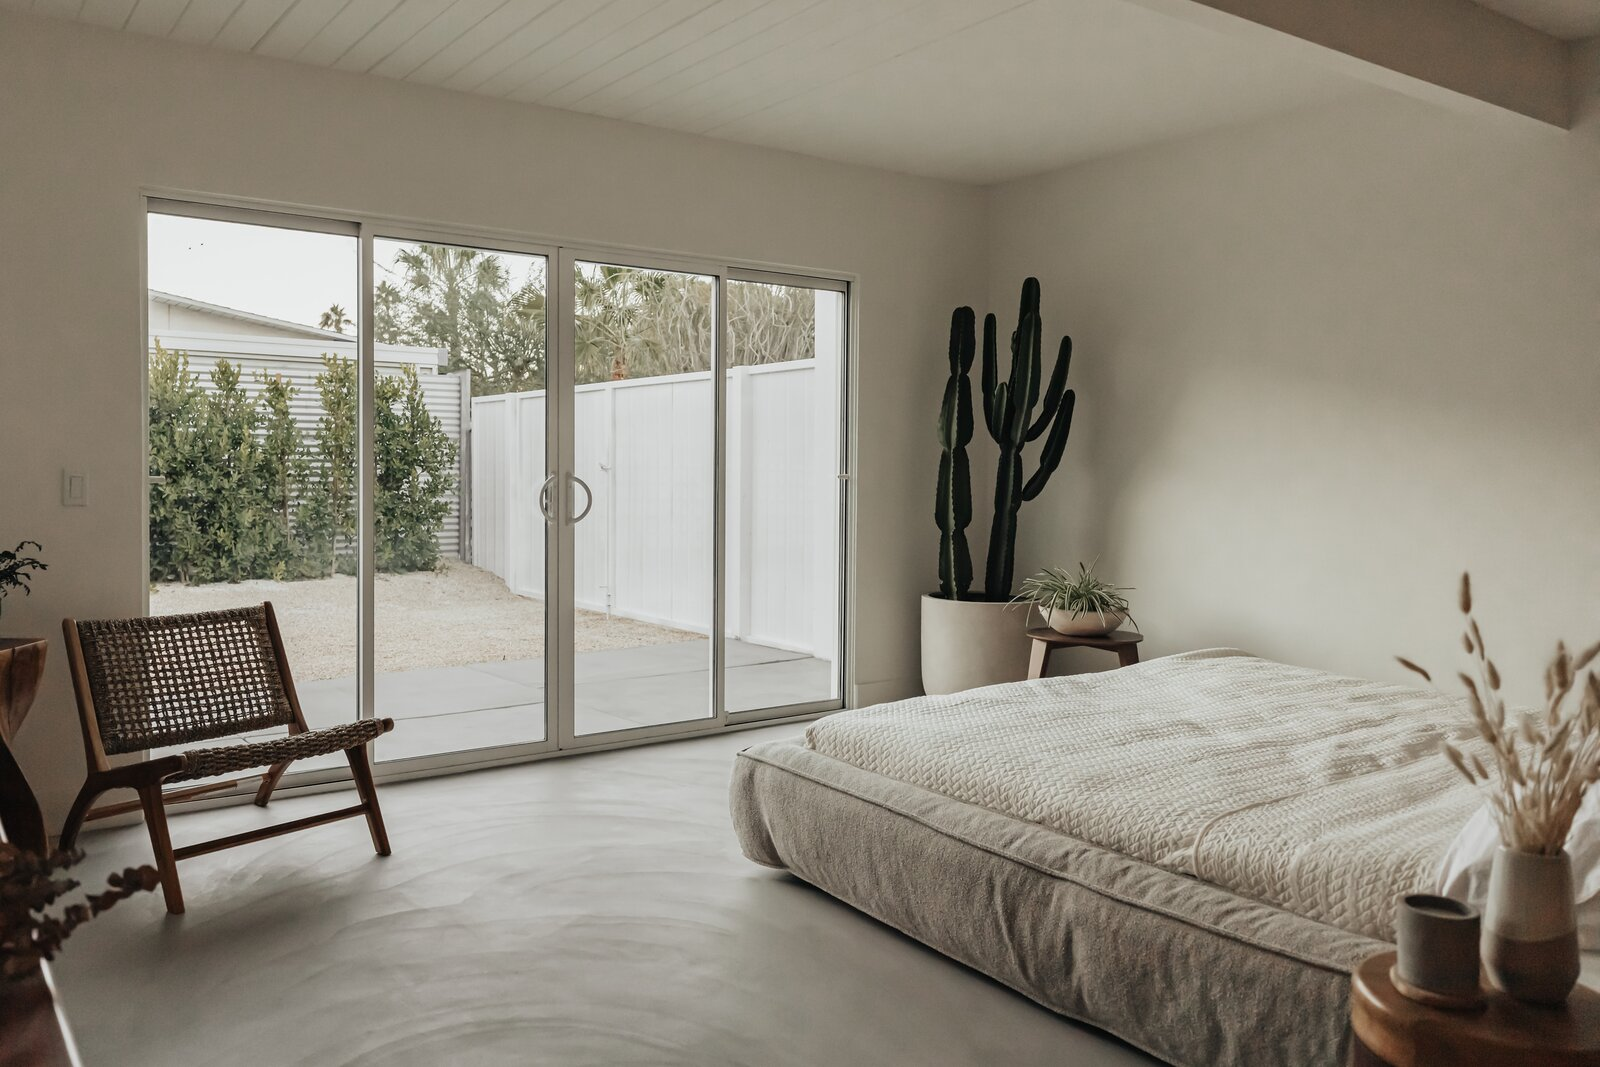 Bedroom in Alexander Home by Lilly Kim